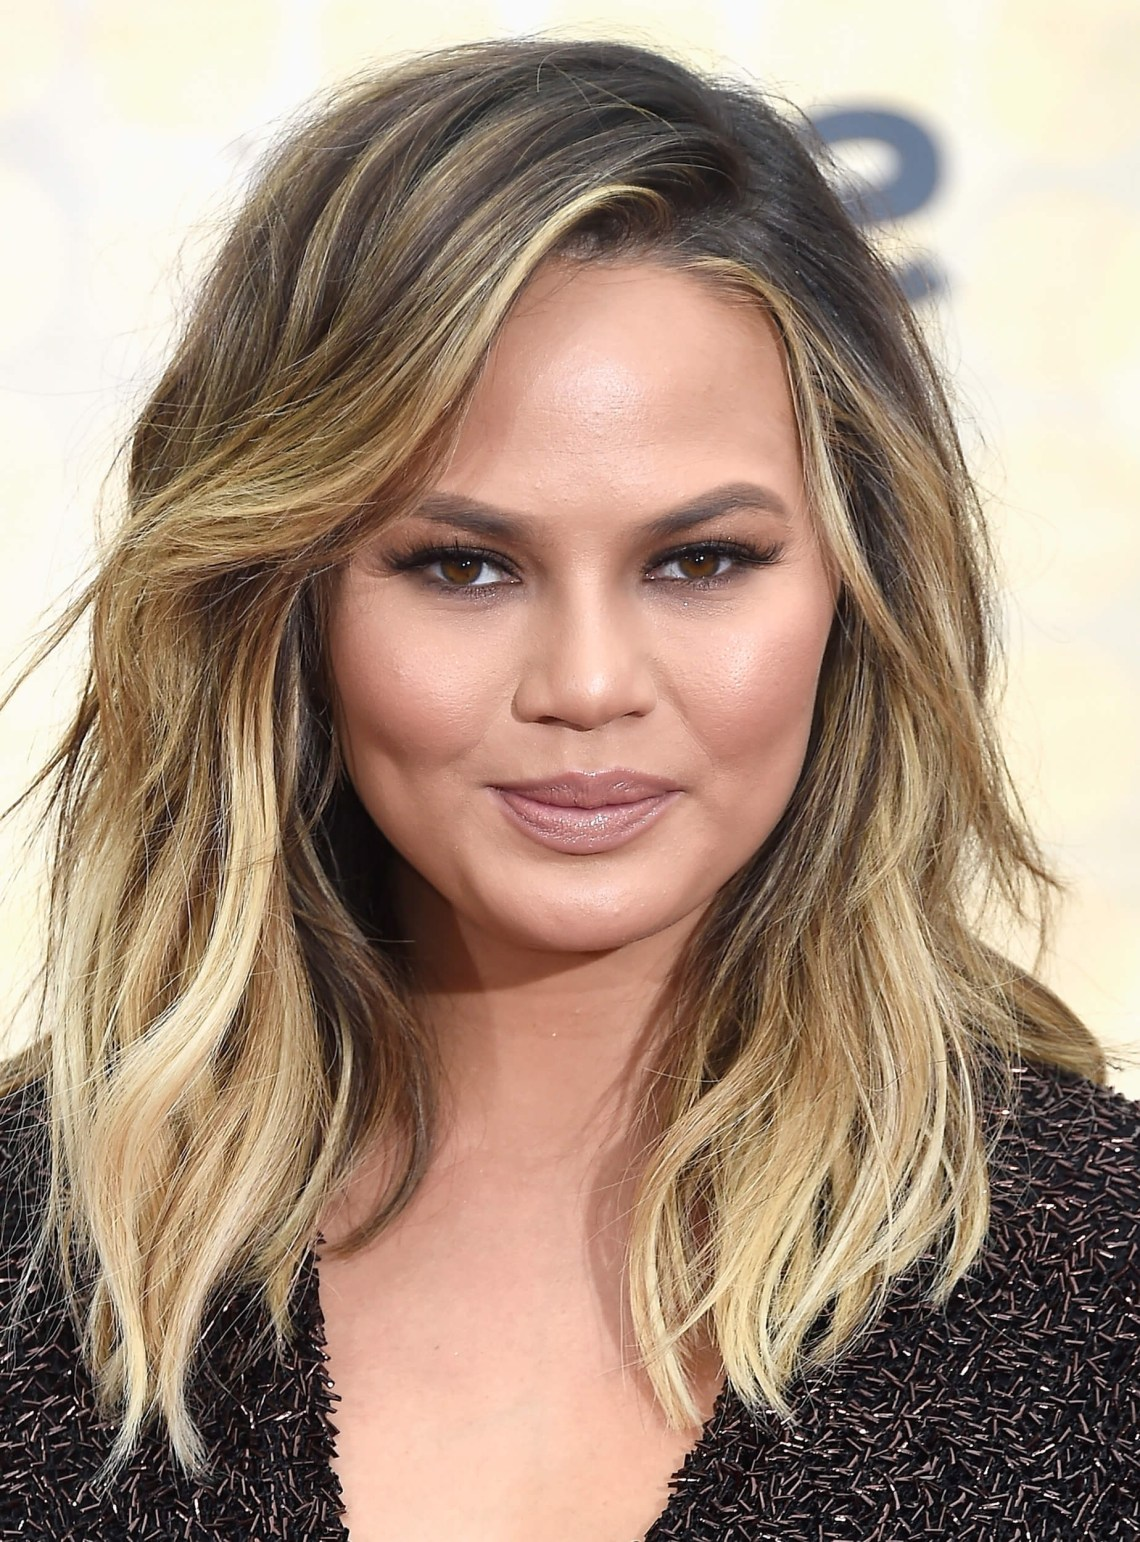 Hairstyle For Round Chubby Face   Hair Style For Party Medium Length Hairstyles For Over 50 With Fat Face